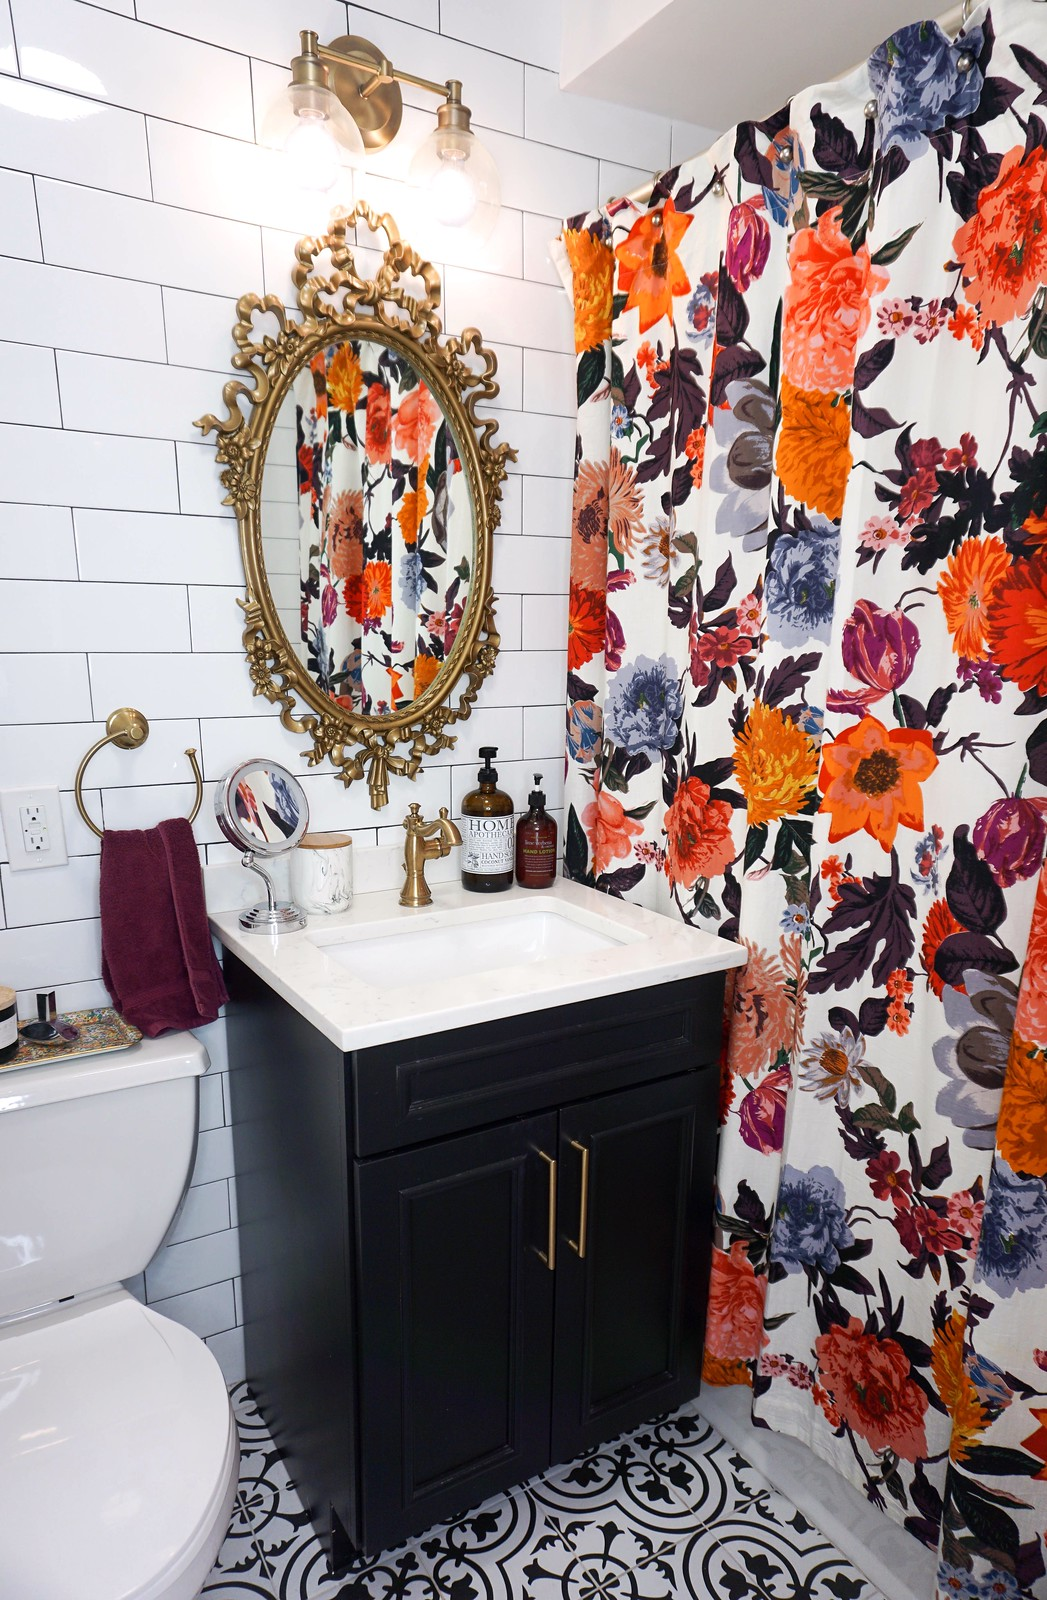 White Subway Tiled Bathroom | Vintage Antique Bathroom Style | Gold Hardware Accents | Black White Tile Bathroom Floor | Anthropologie Floral Shower Curtain | Black Bathroom Vanity Cabinet